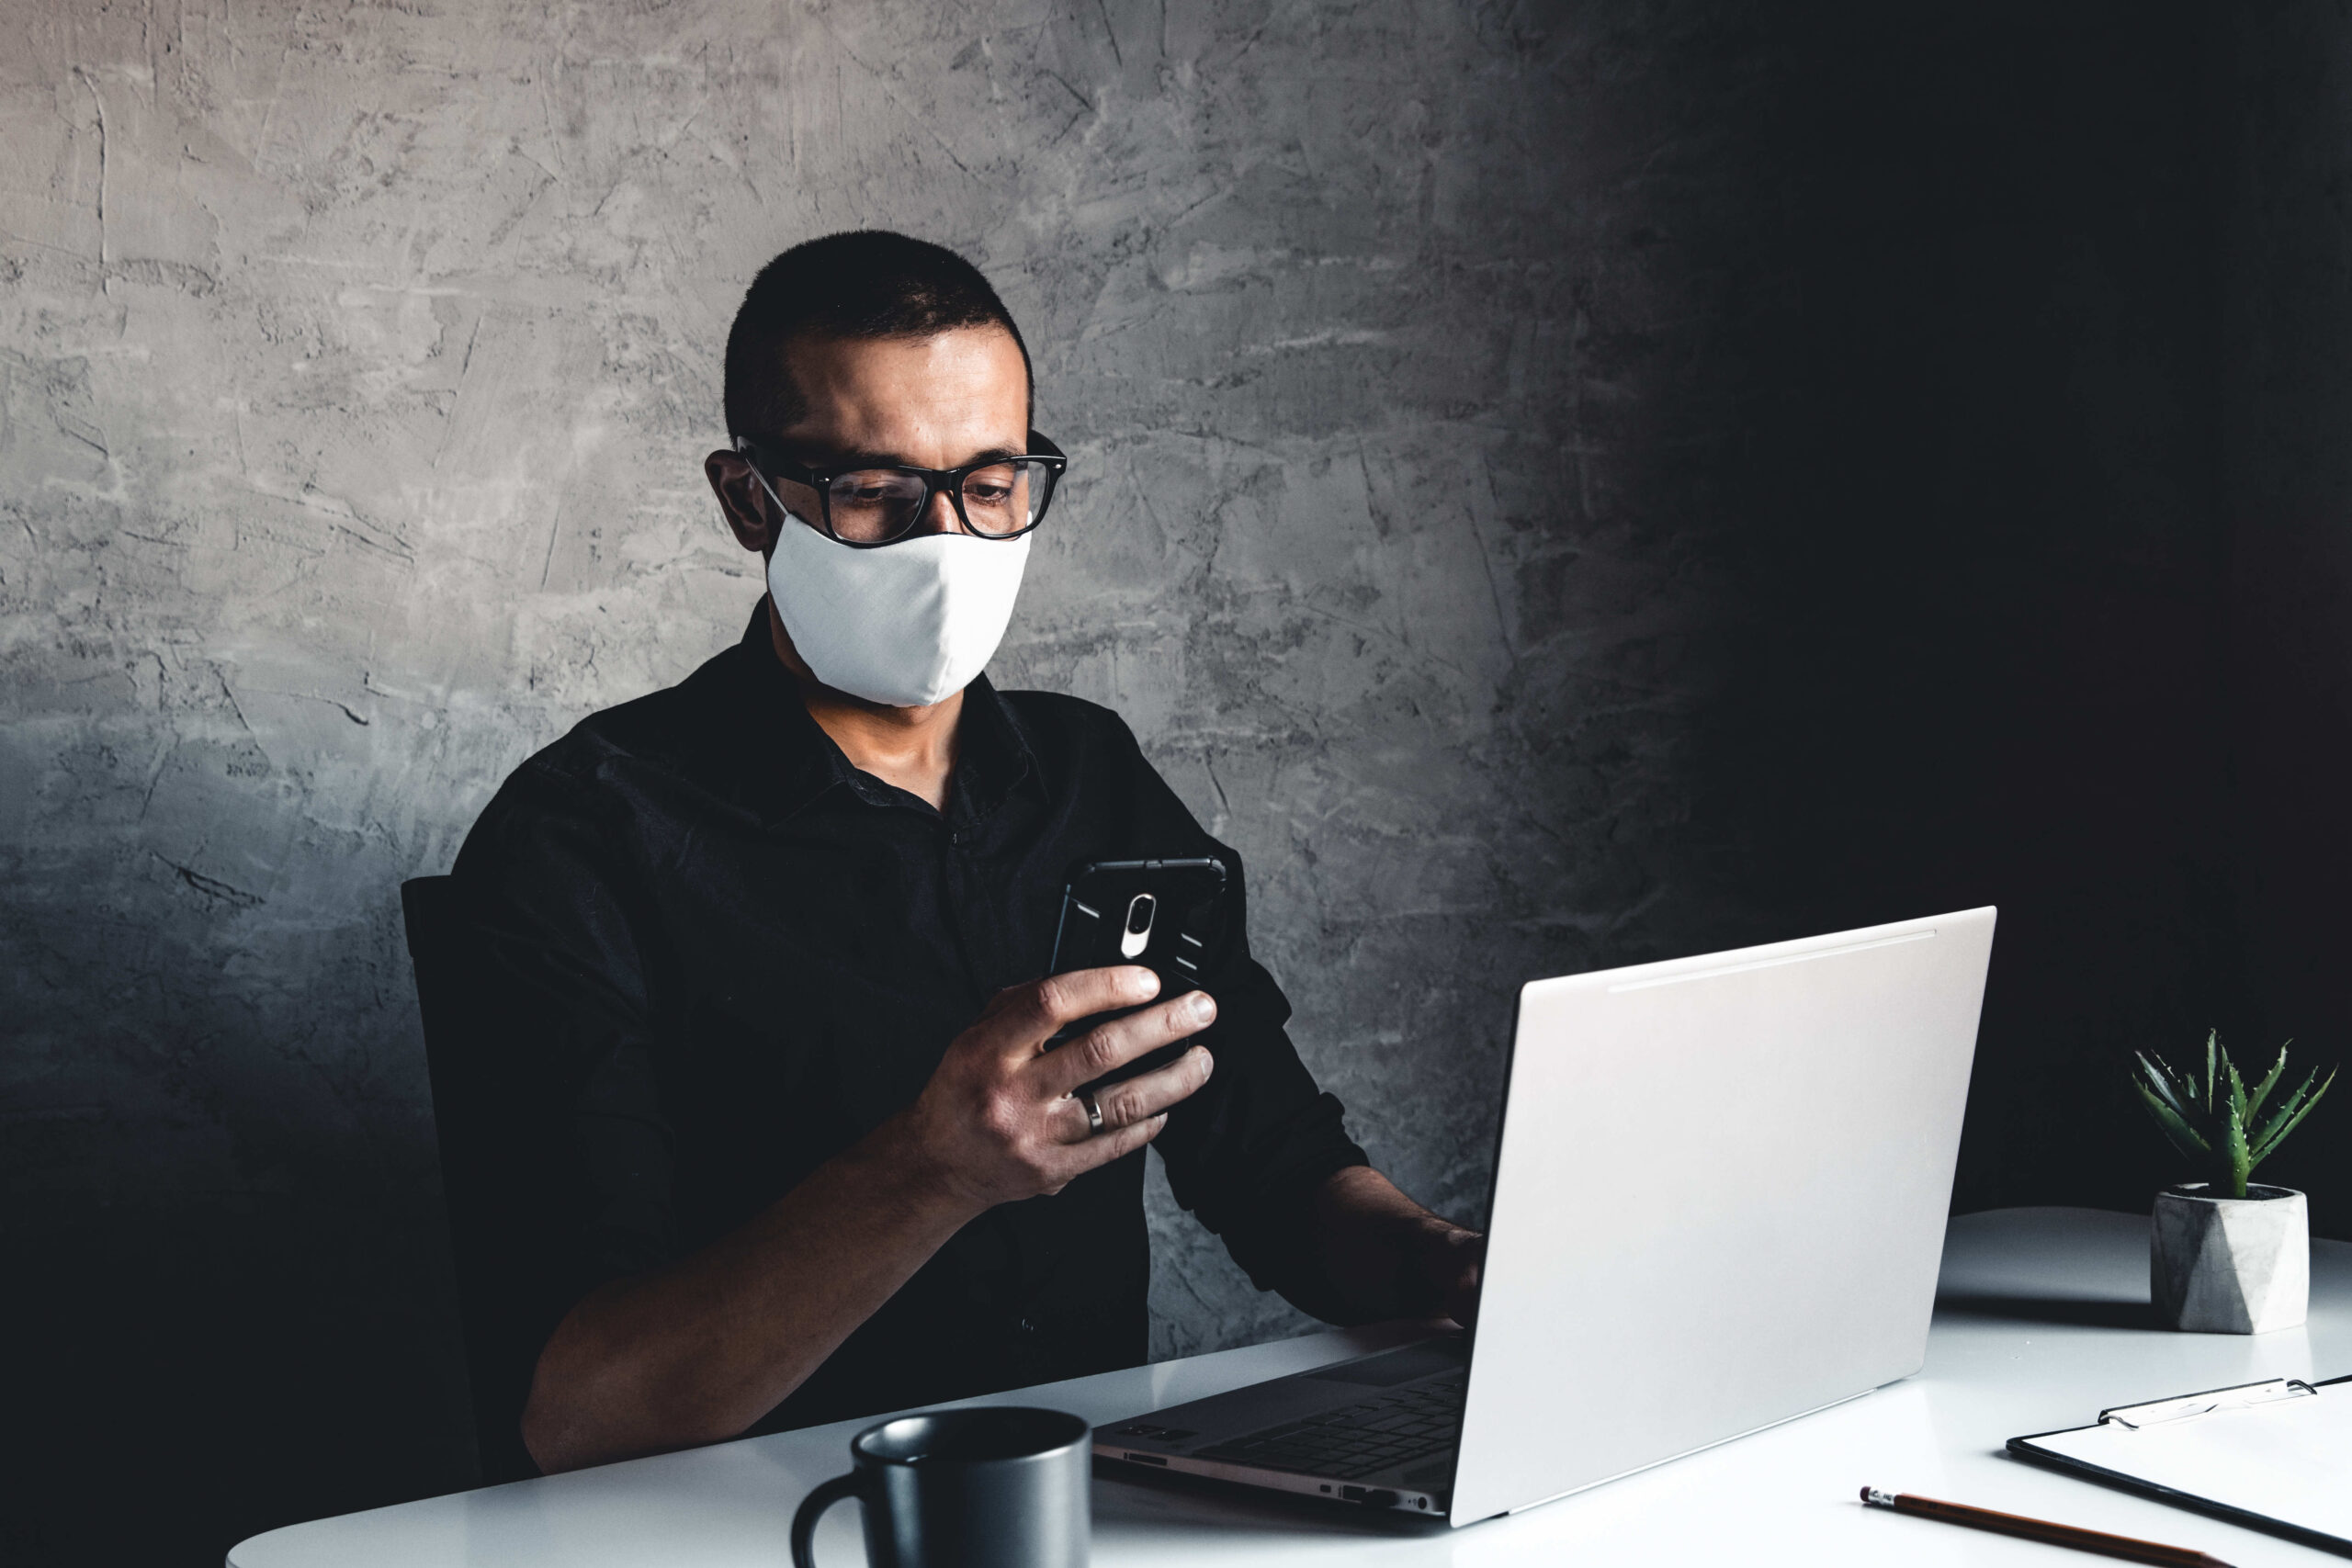 masked-man-works-at-a-computer-pandemic-coronavi-live-casino-online-content-image